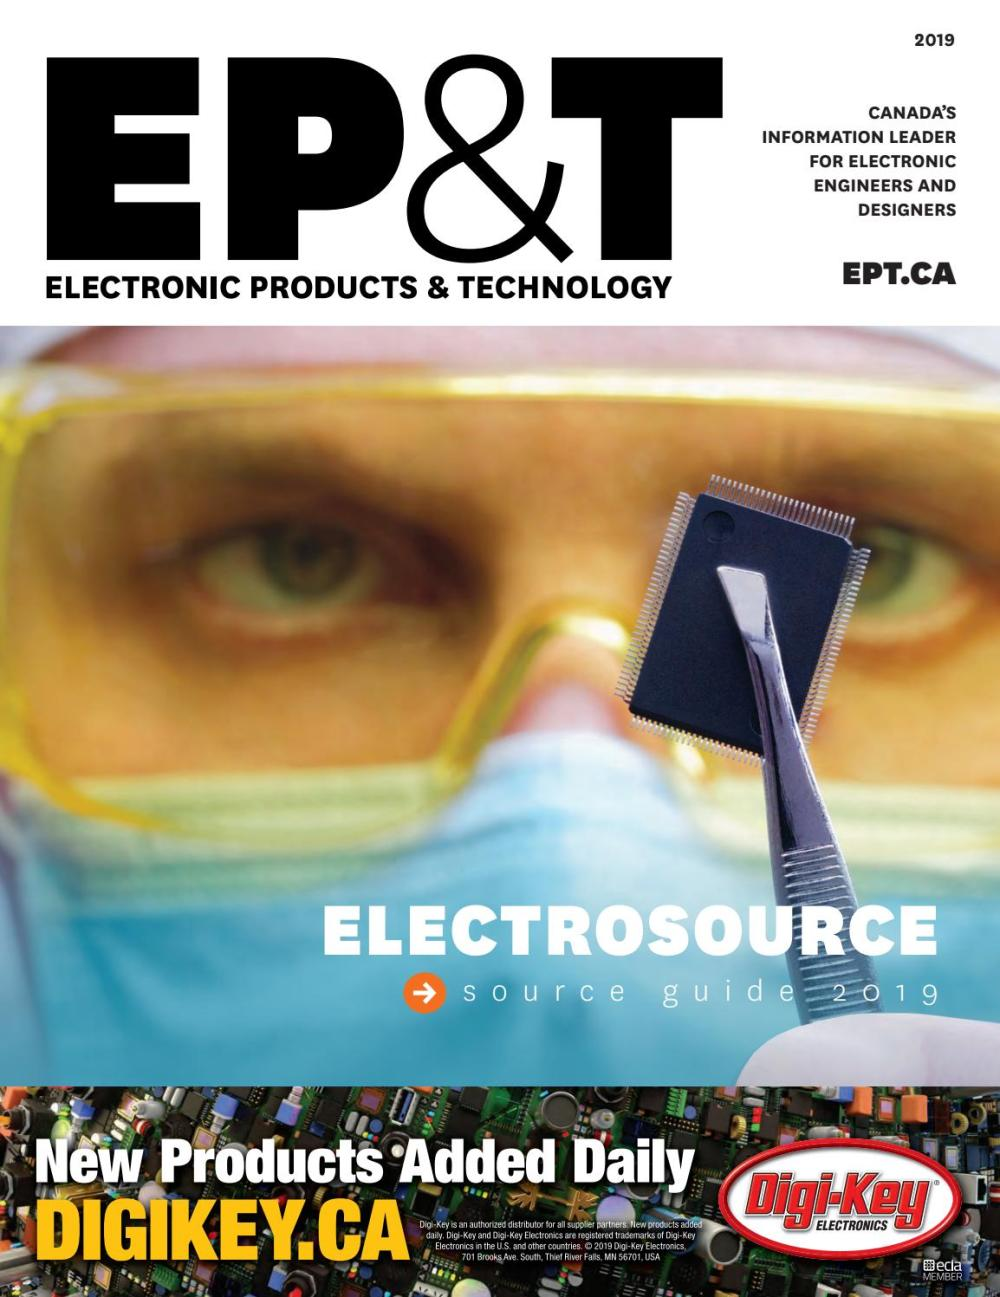 medium resolution of electronic products technology electrosource directory 2019 by annex business media issuu